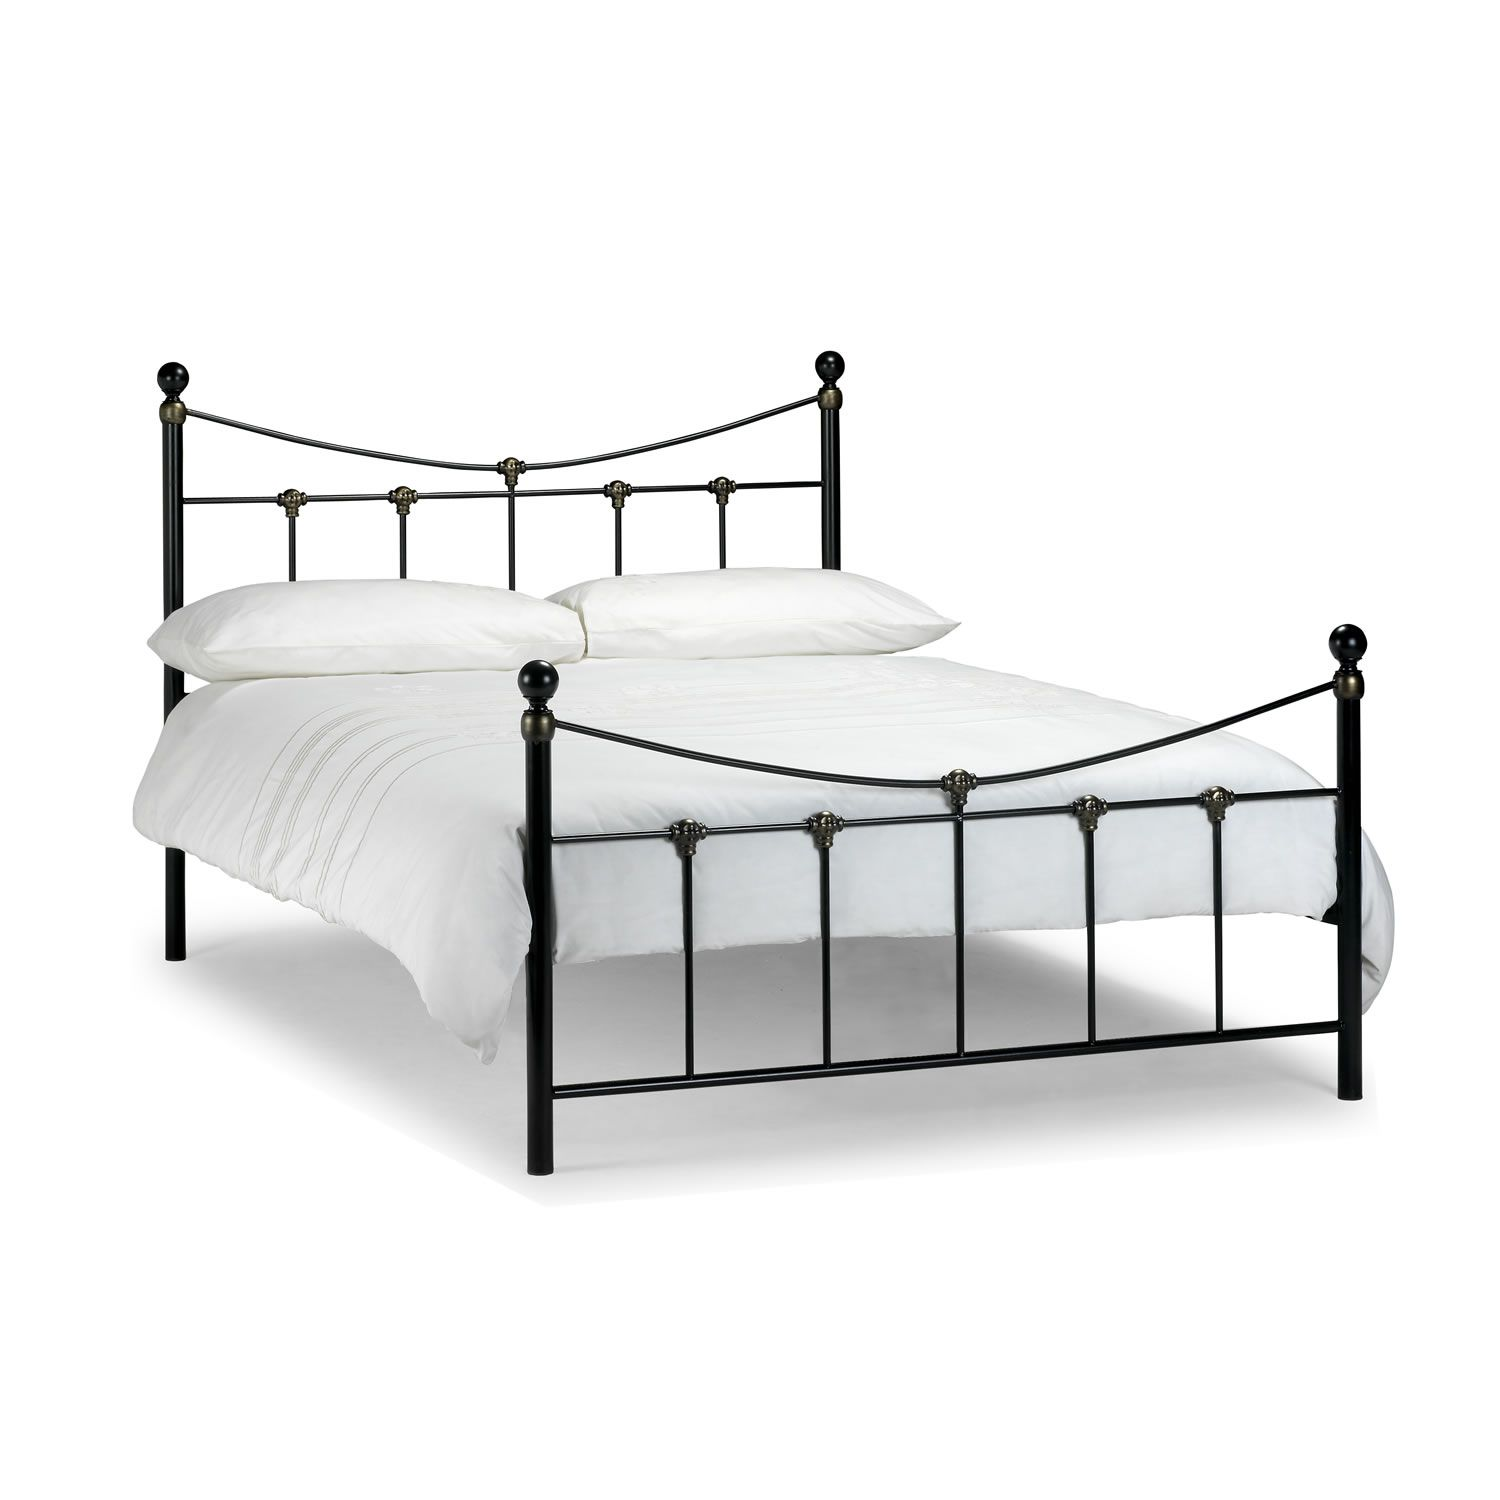 Best Bed Frames Iron Check Out Other Gallery Of Black Iron 640 x 480